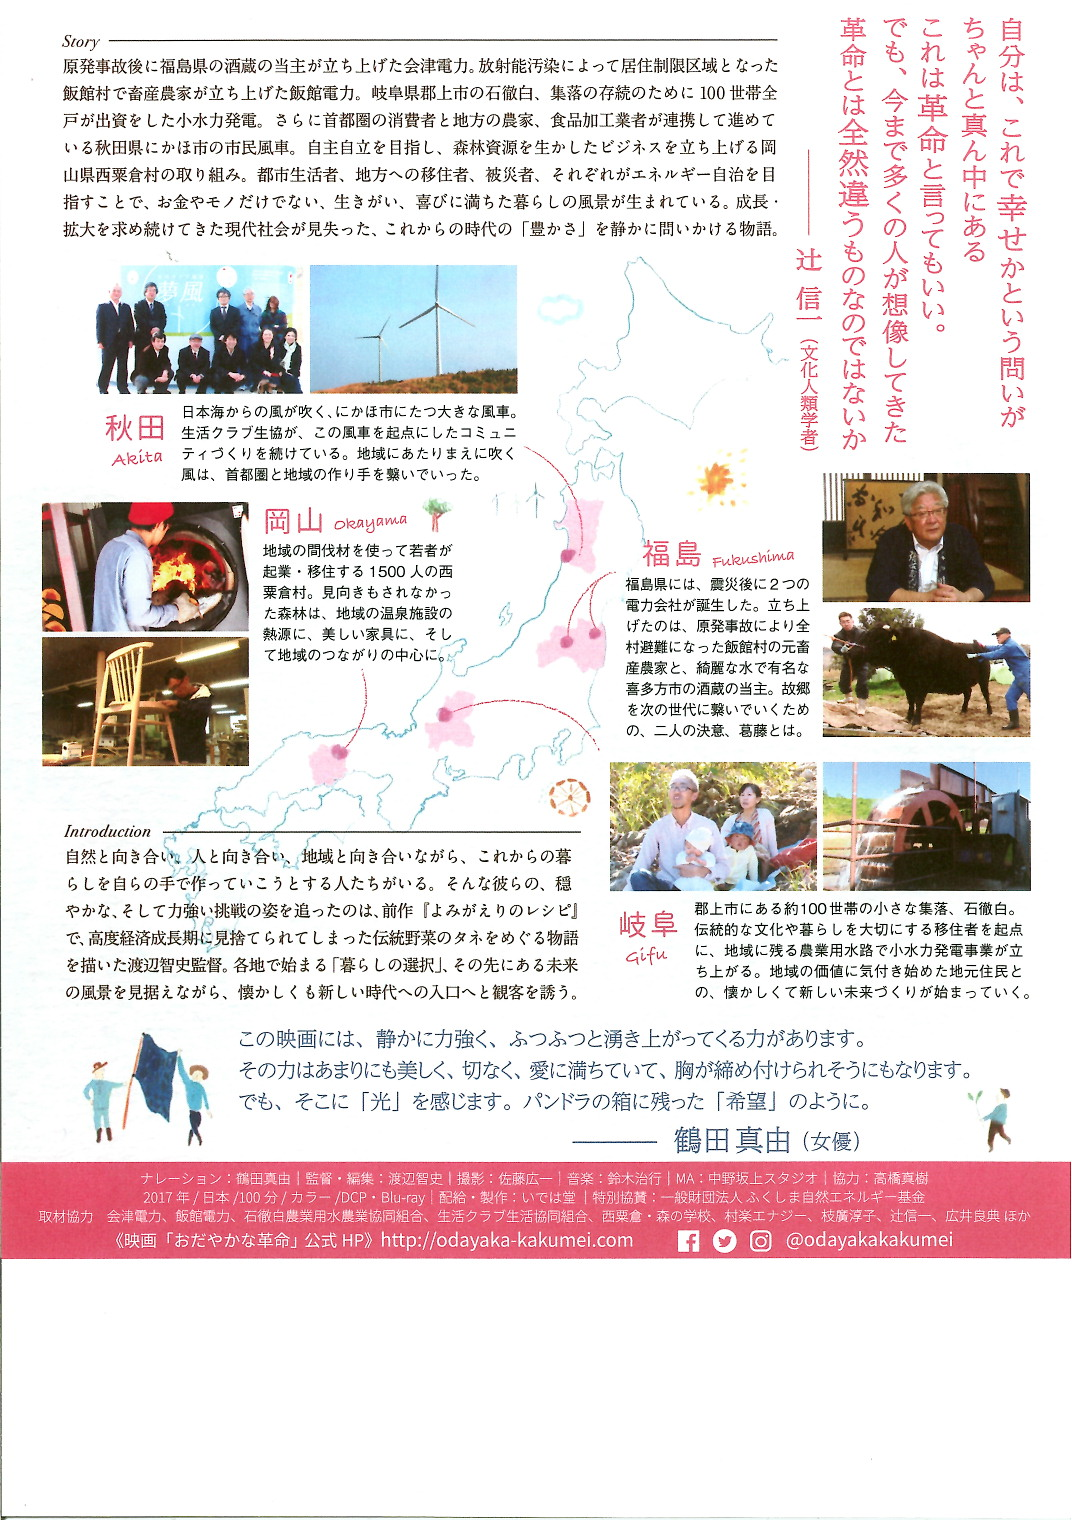 scan181025173826-000